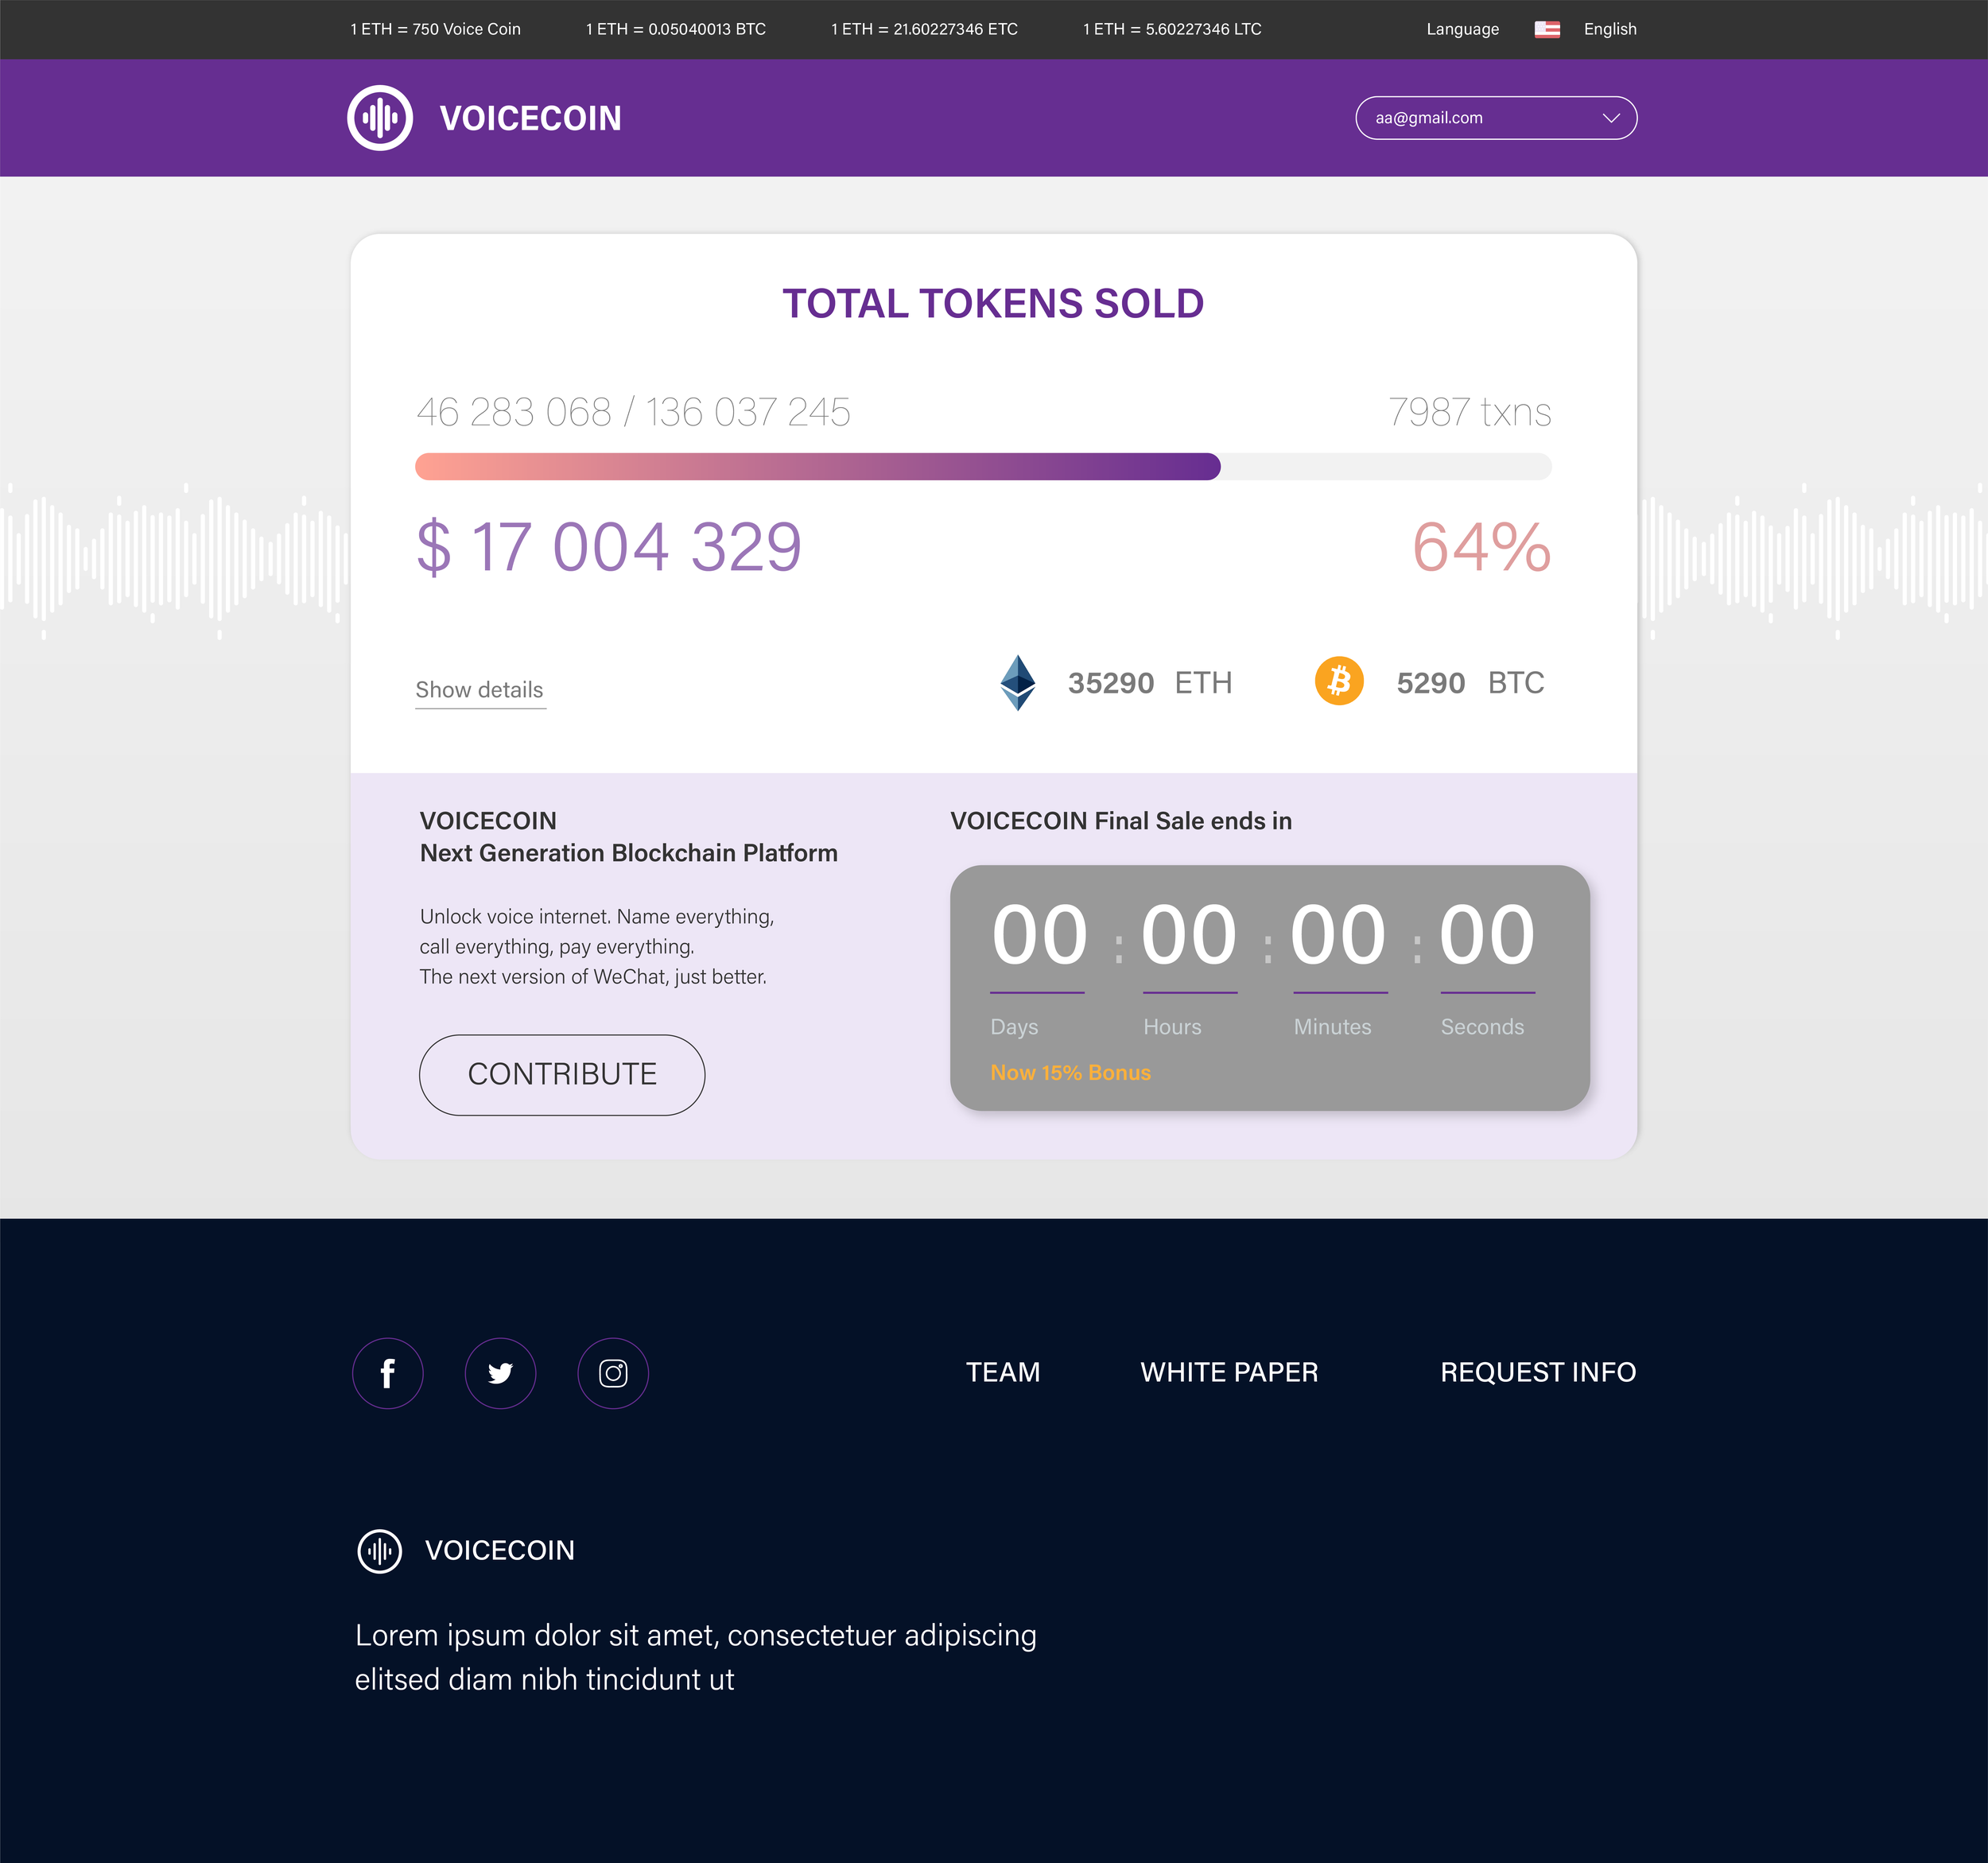 Voicecoin_Contribution_Artboard 13.png